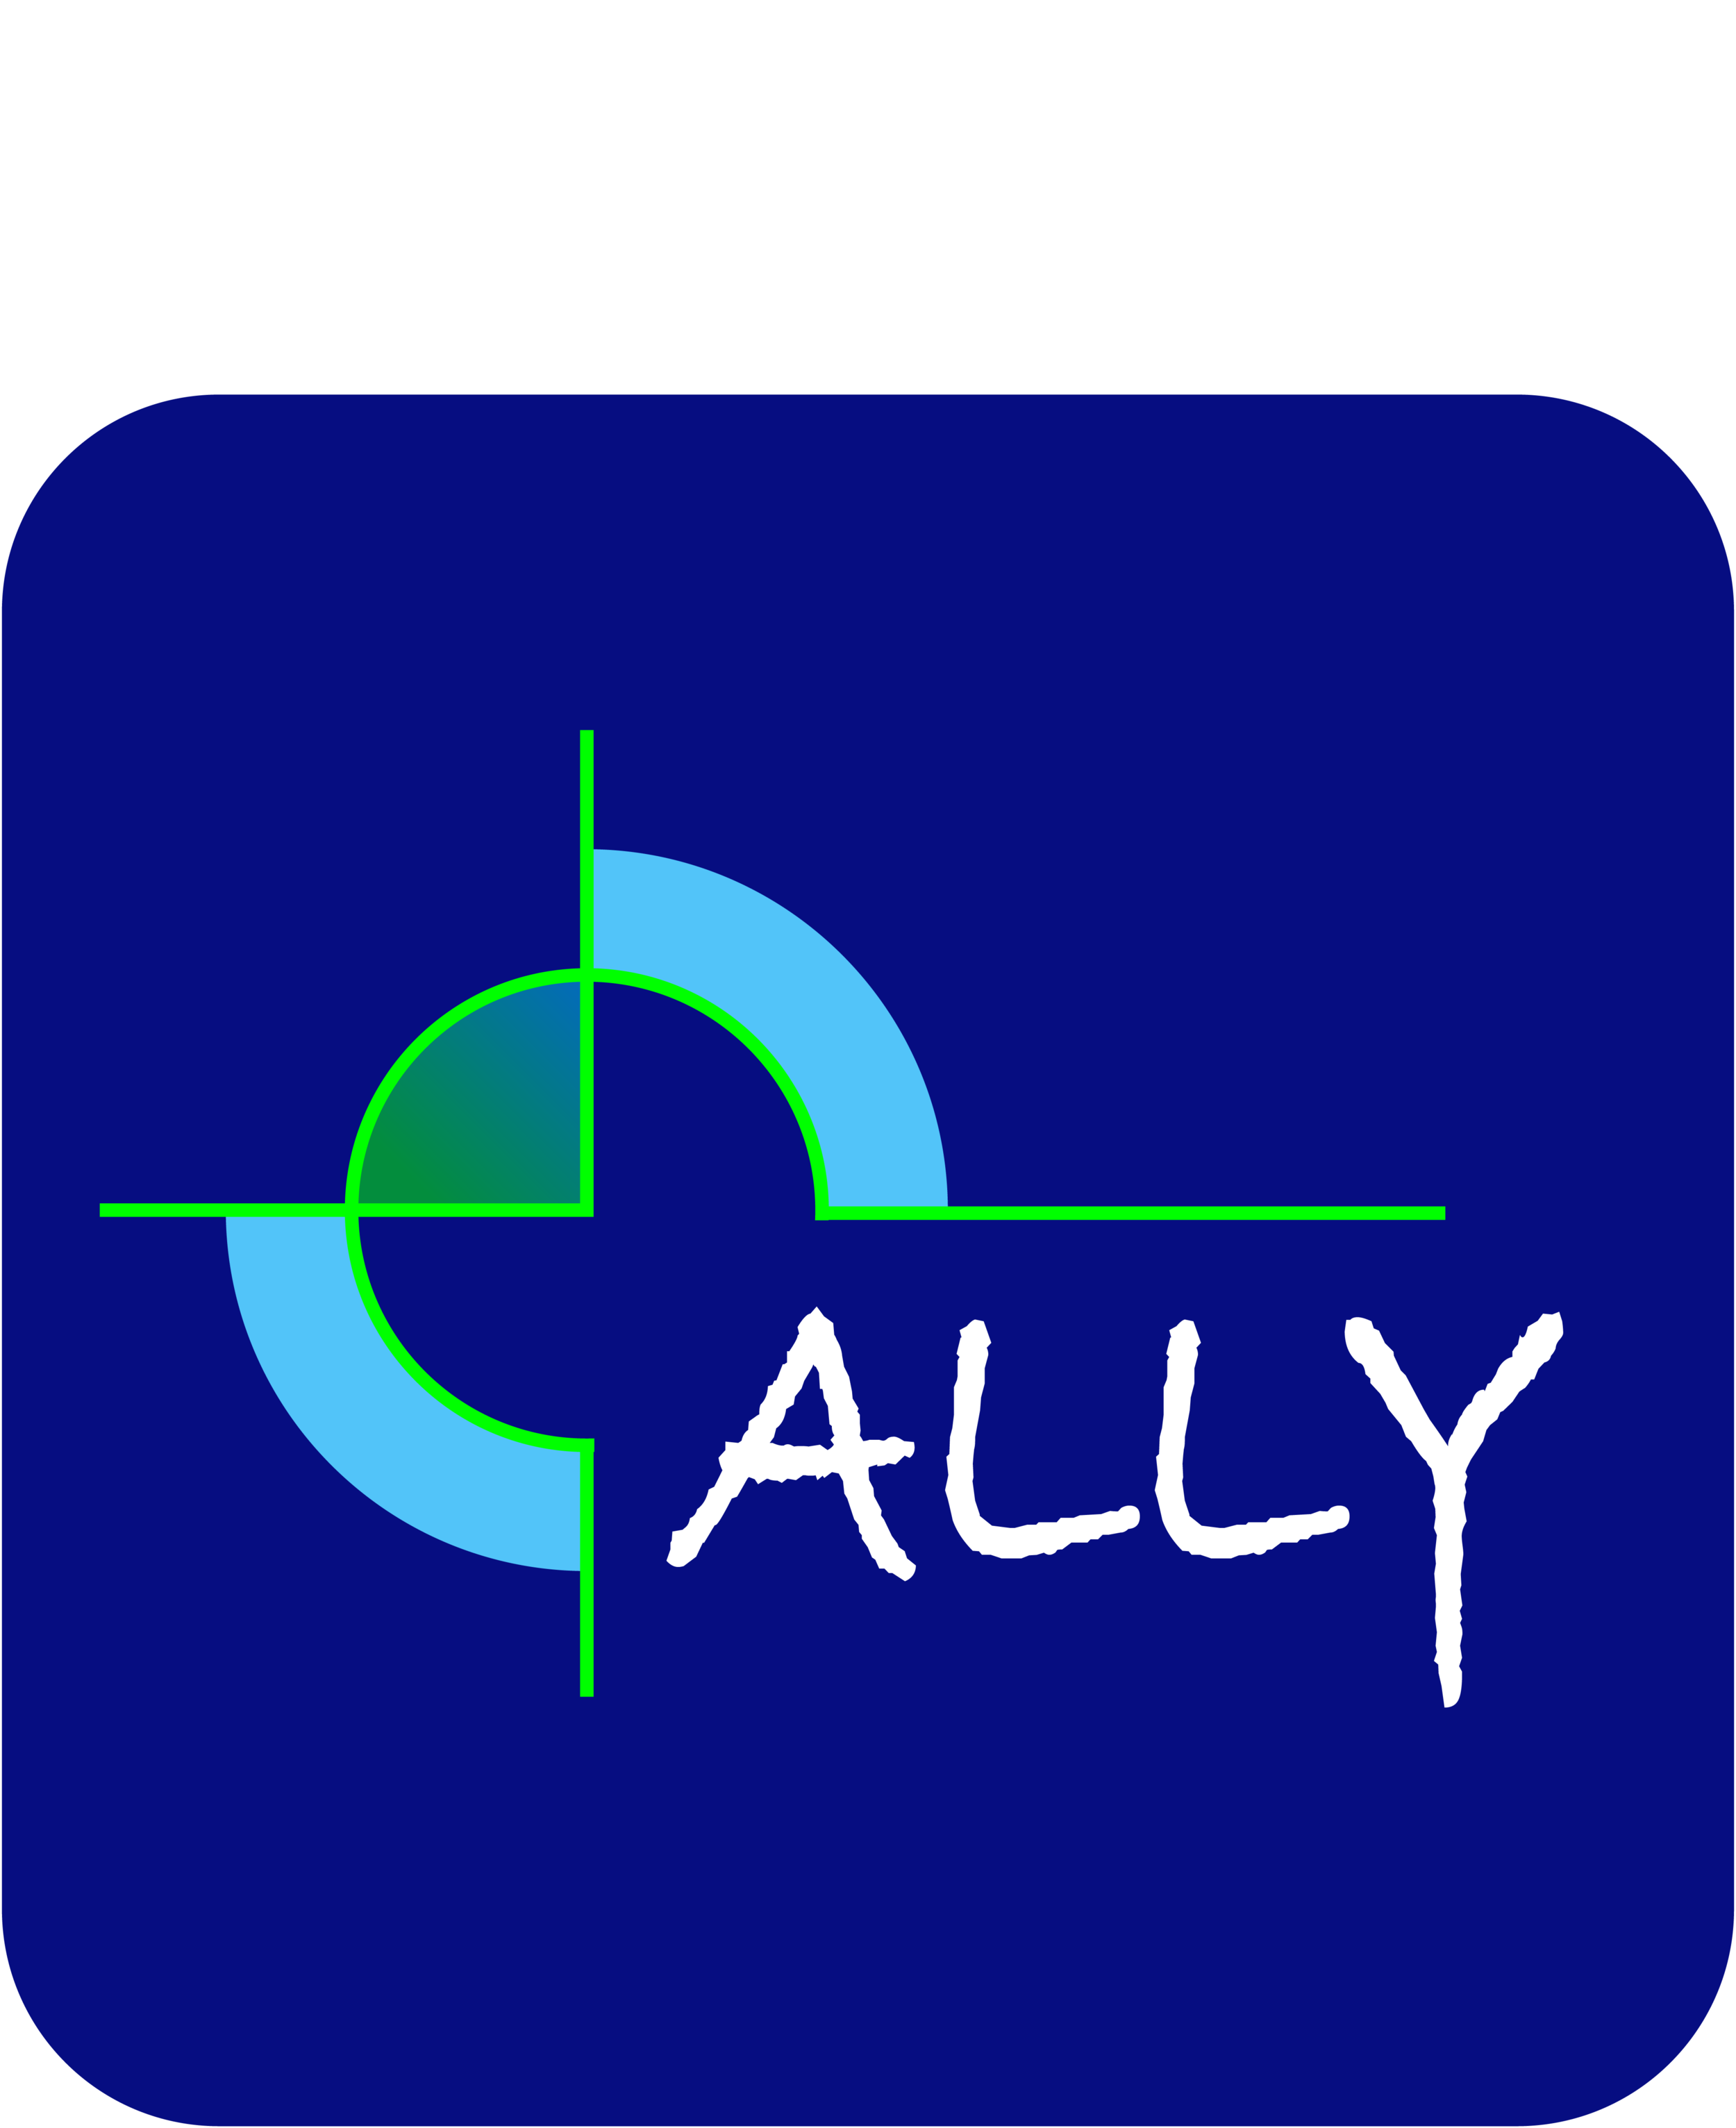 Ally_App icon_1024x1024 px.png